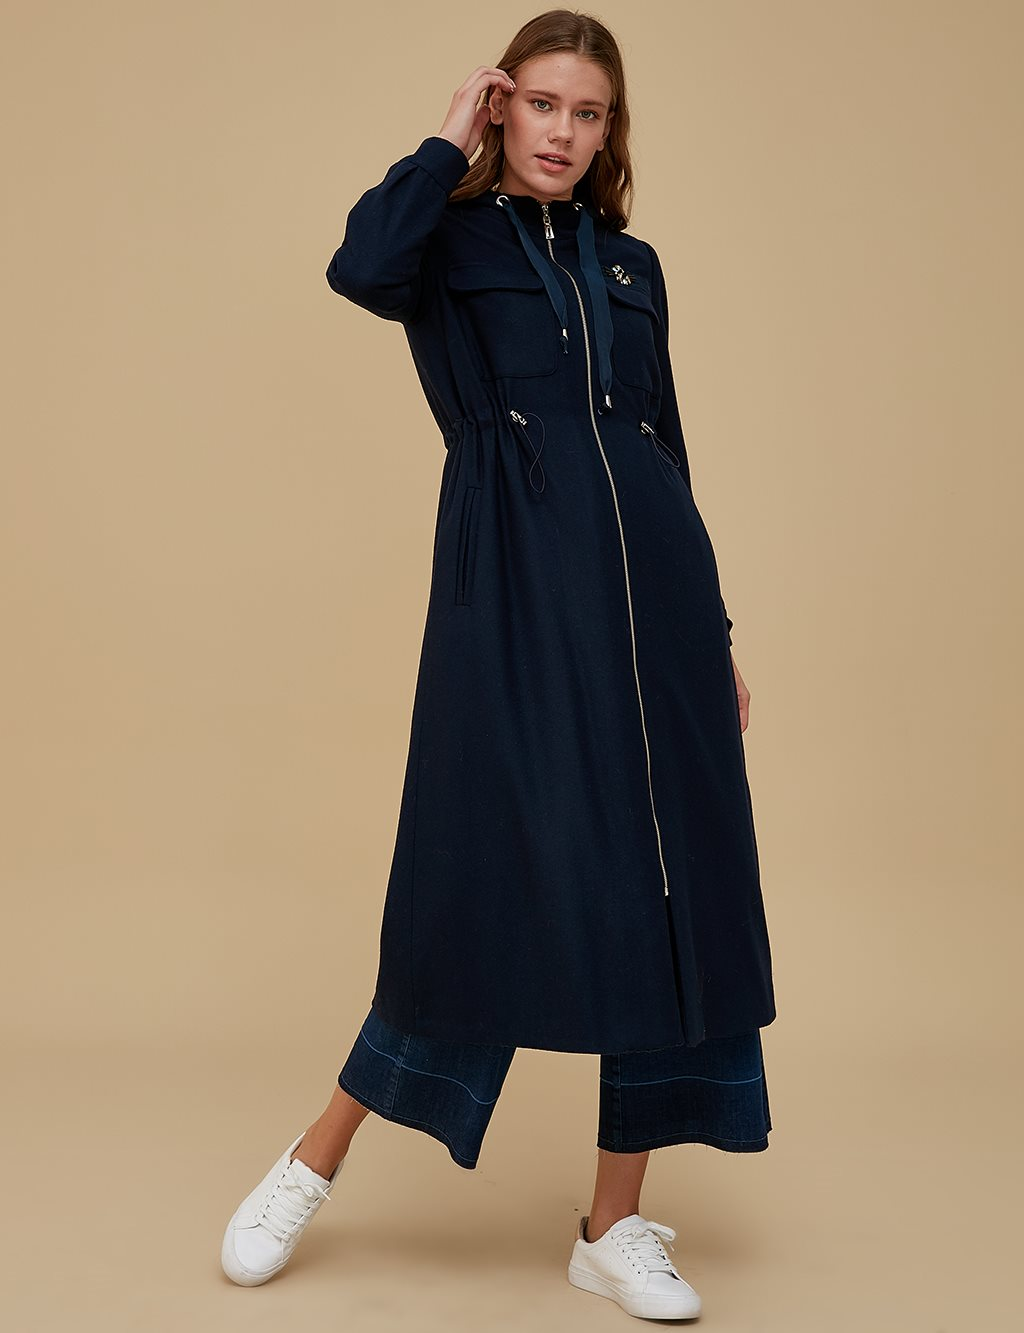 Coat With Vest A9 17083 Navy